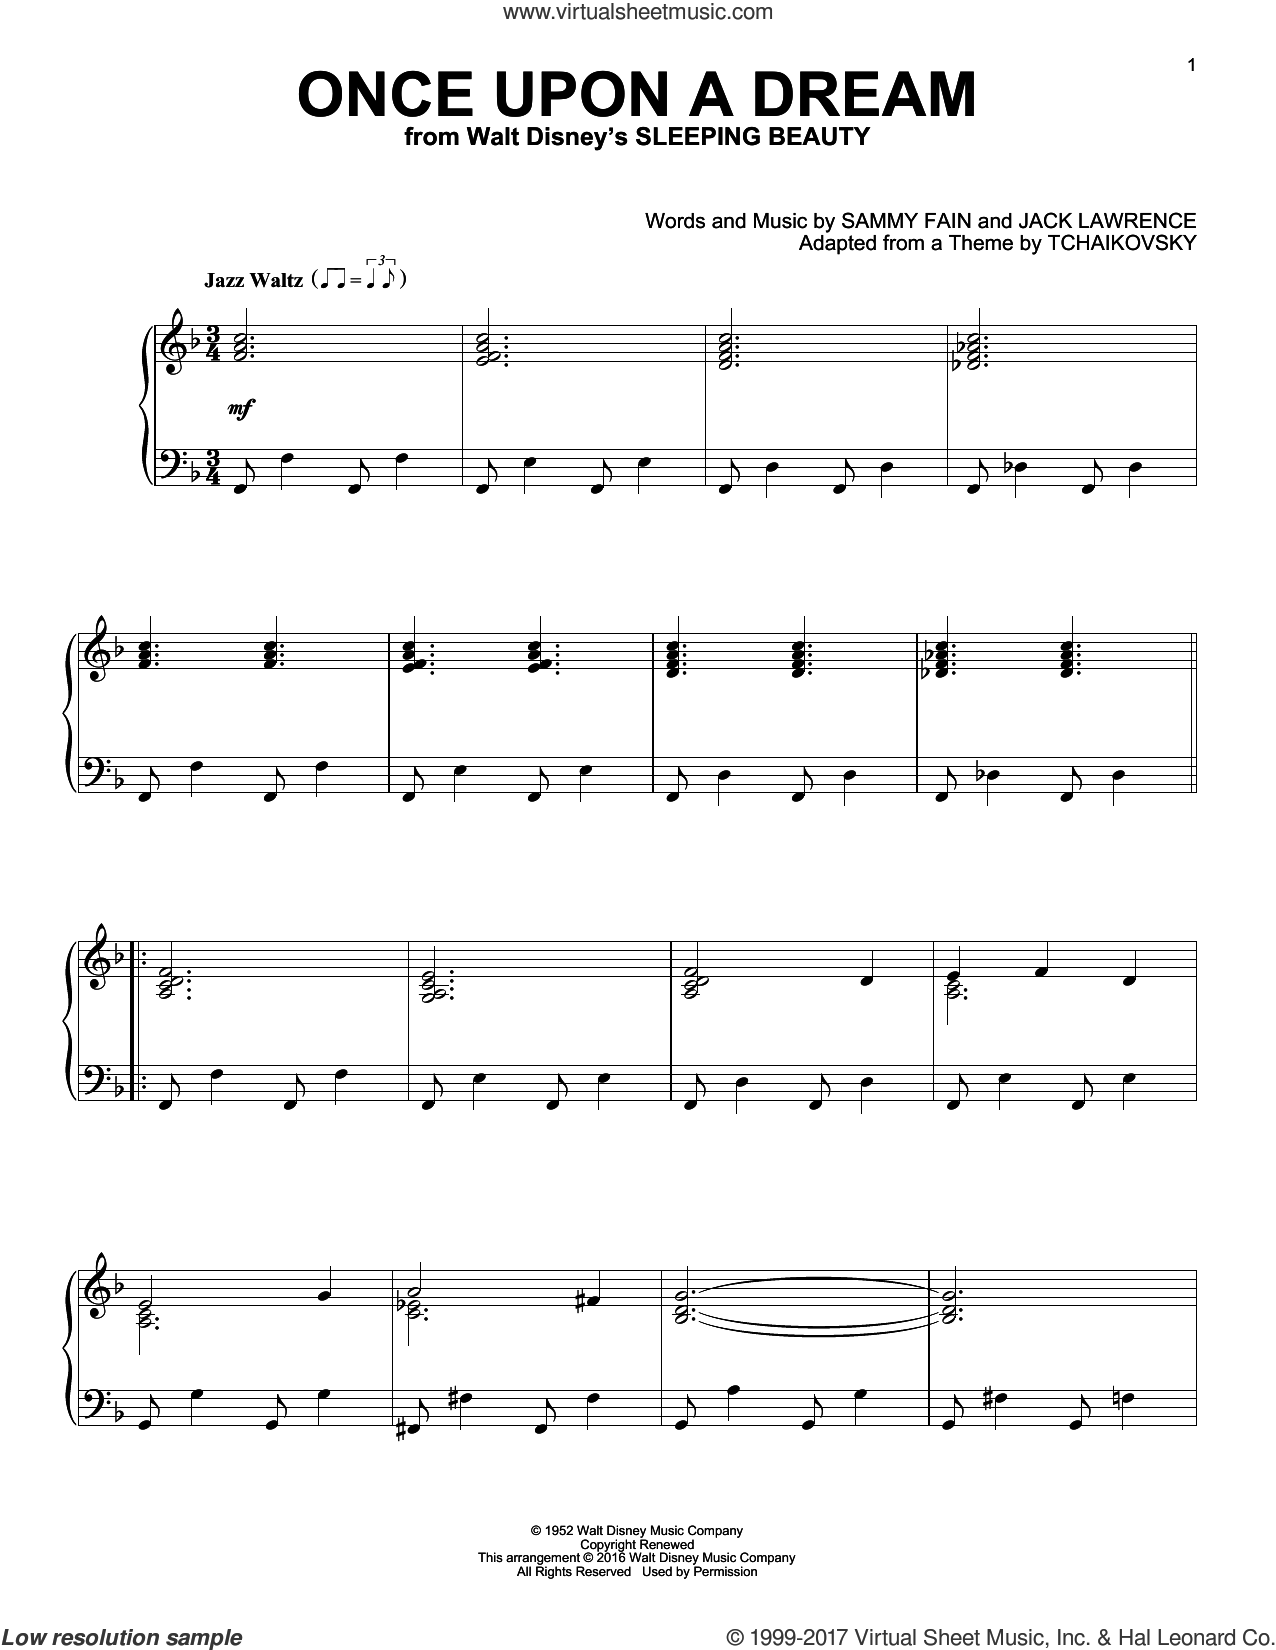 Once Upon A Dream [Jazz version] sheet music for piano solo by Sammy Fain and Jack Lawrence, intermediate skill level